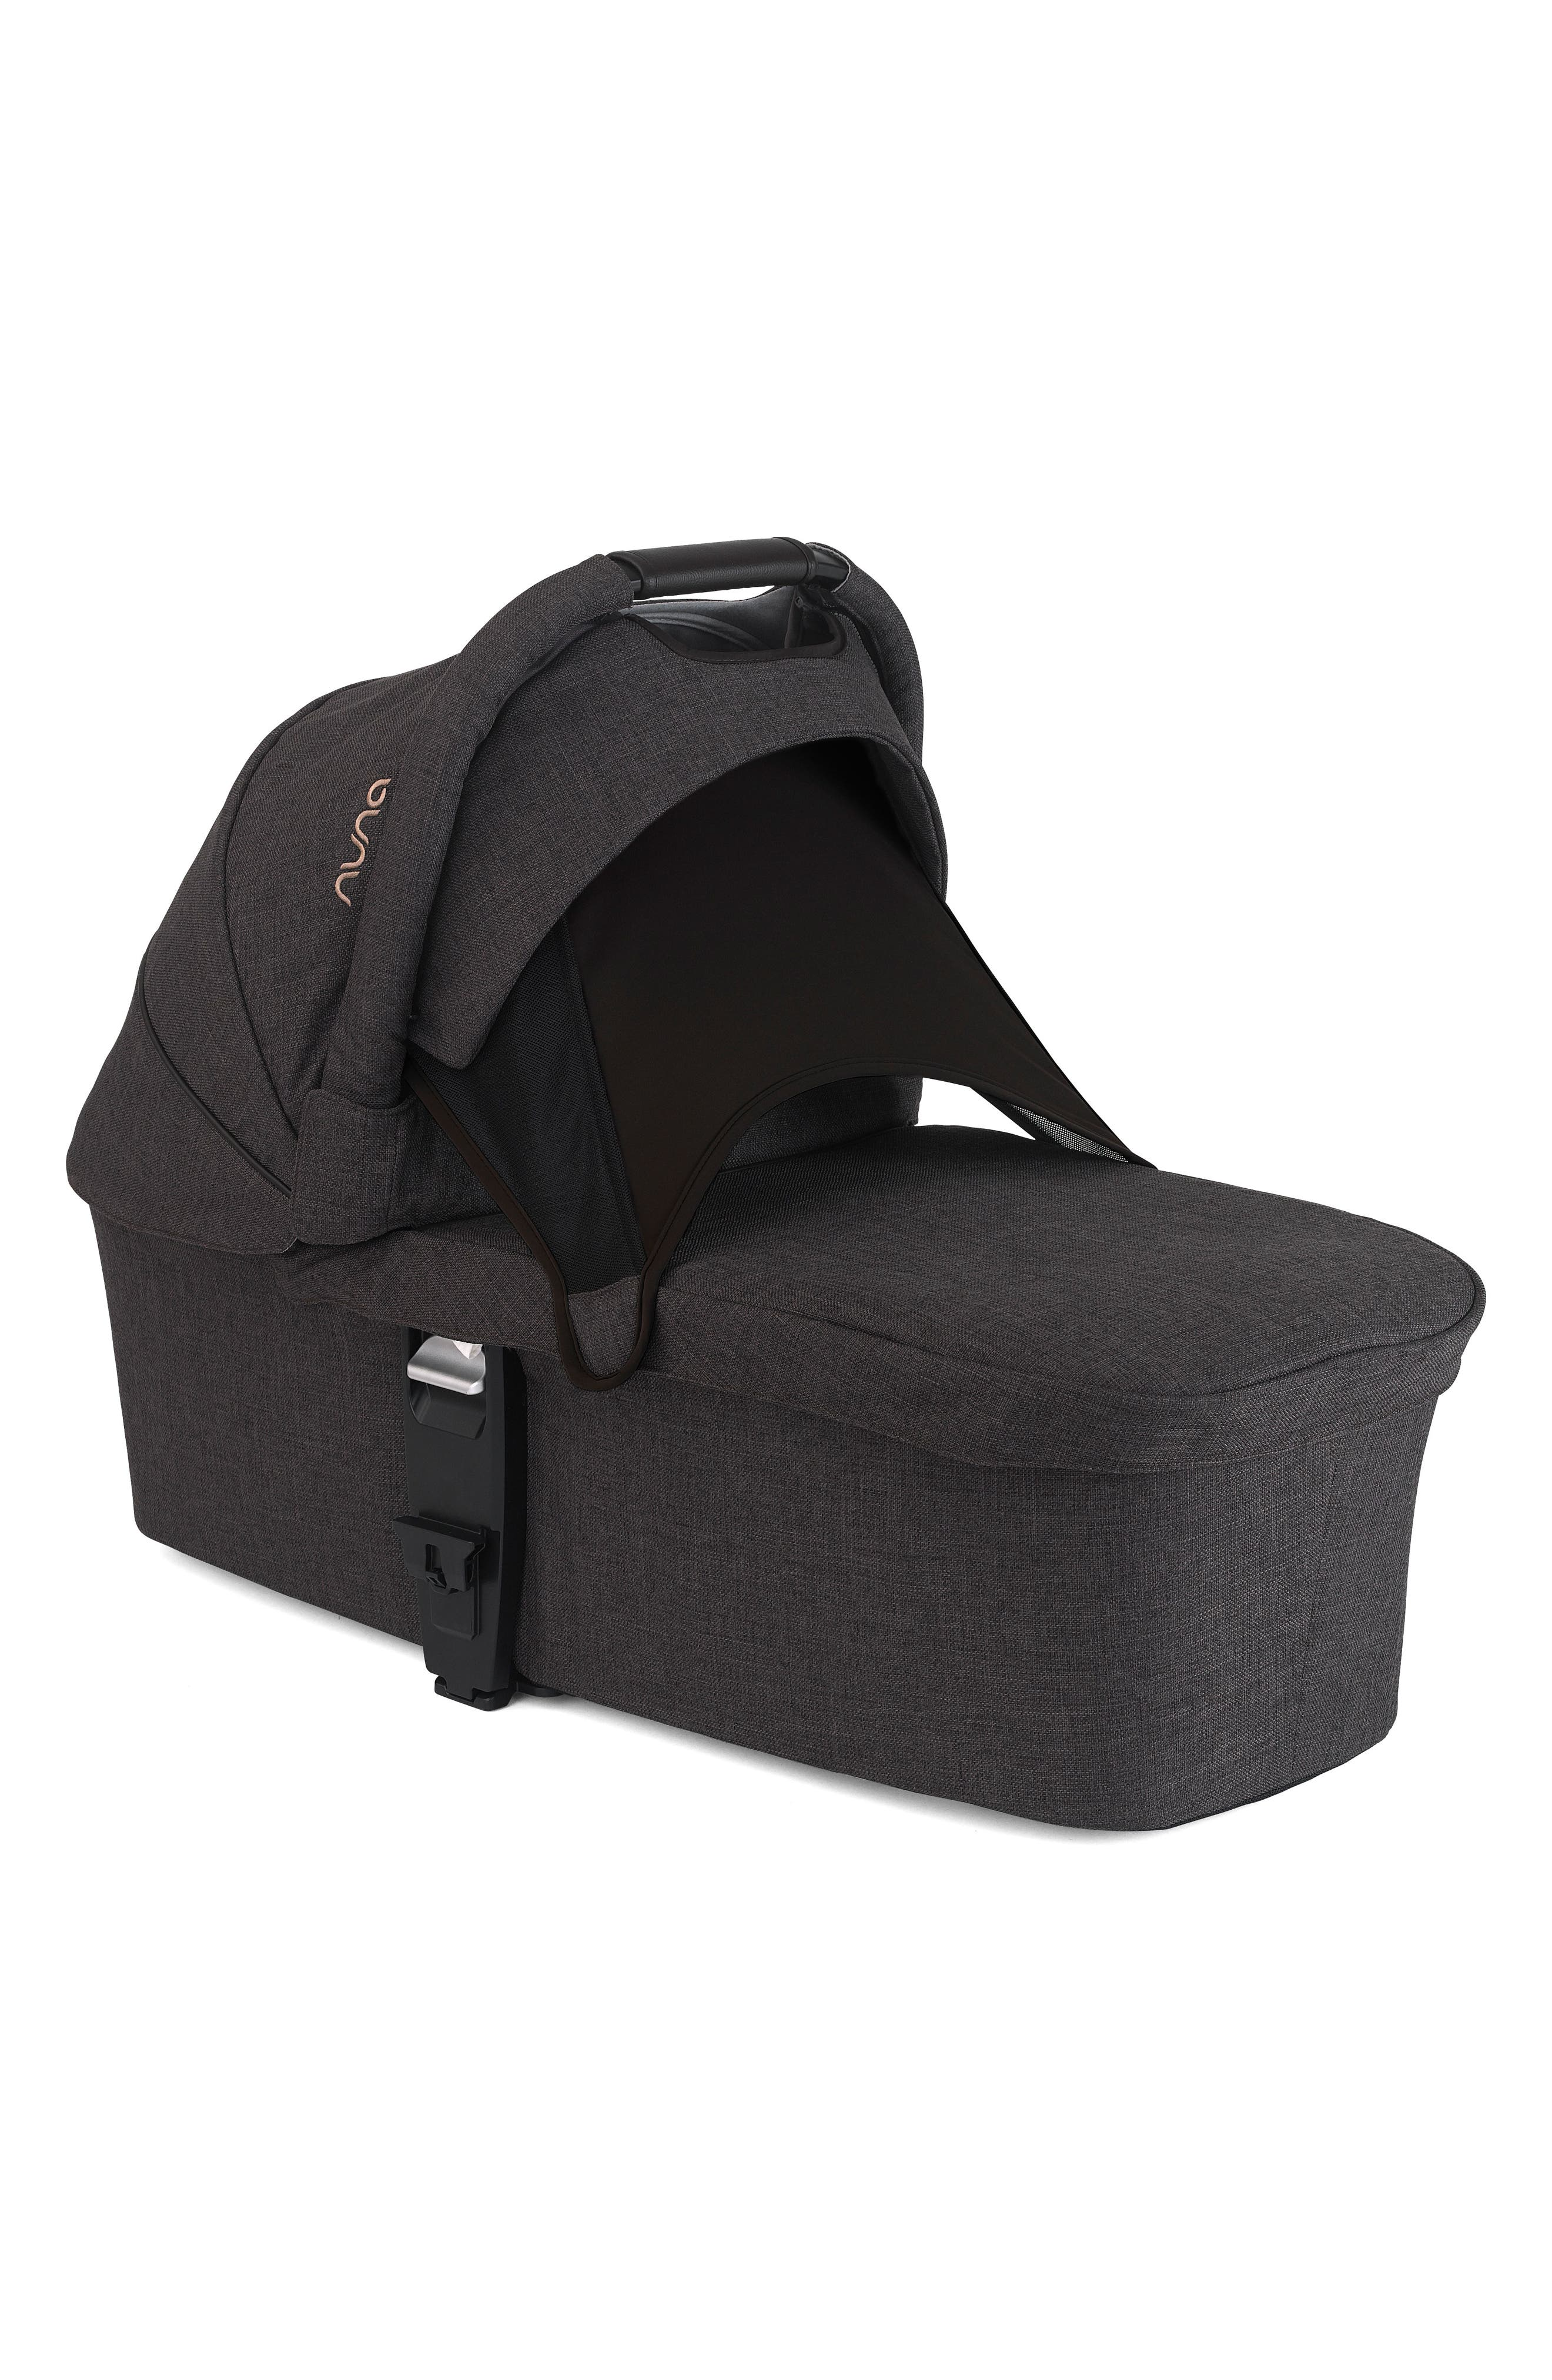 MIXX<sup>™</sup> Suited Collection Stroller & Bassinet Set,                             Alternate thumbnail 4, color,                             001